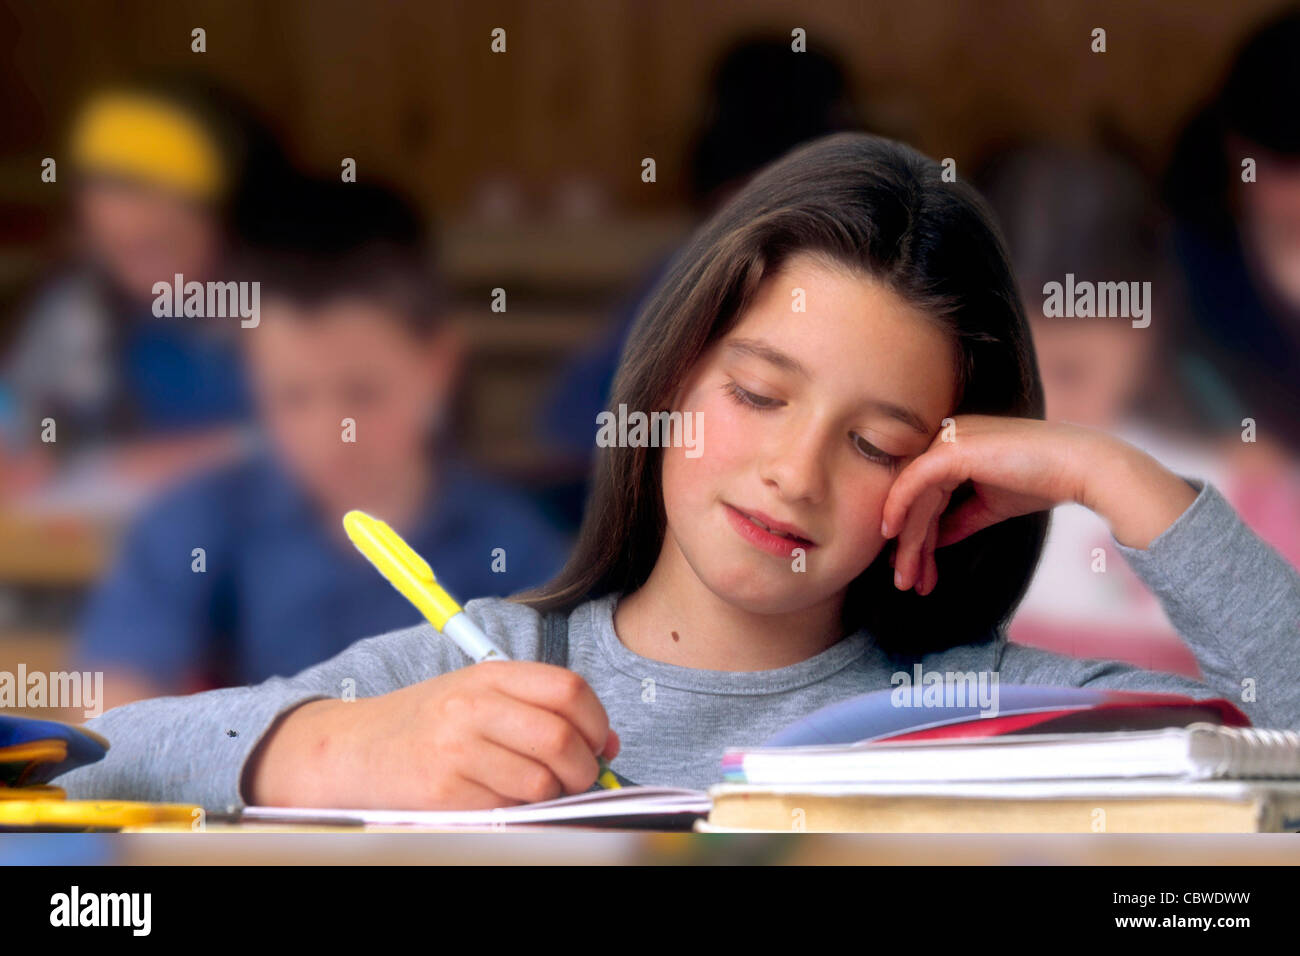 Girl in a classroom - Little girl in a school classroom writing during a lesson. - Stock Image